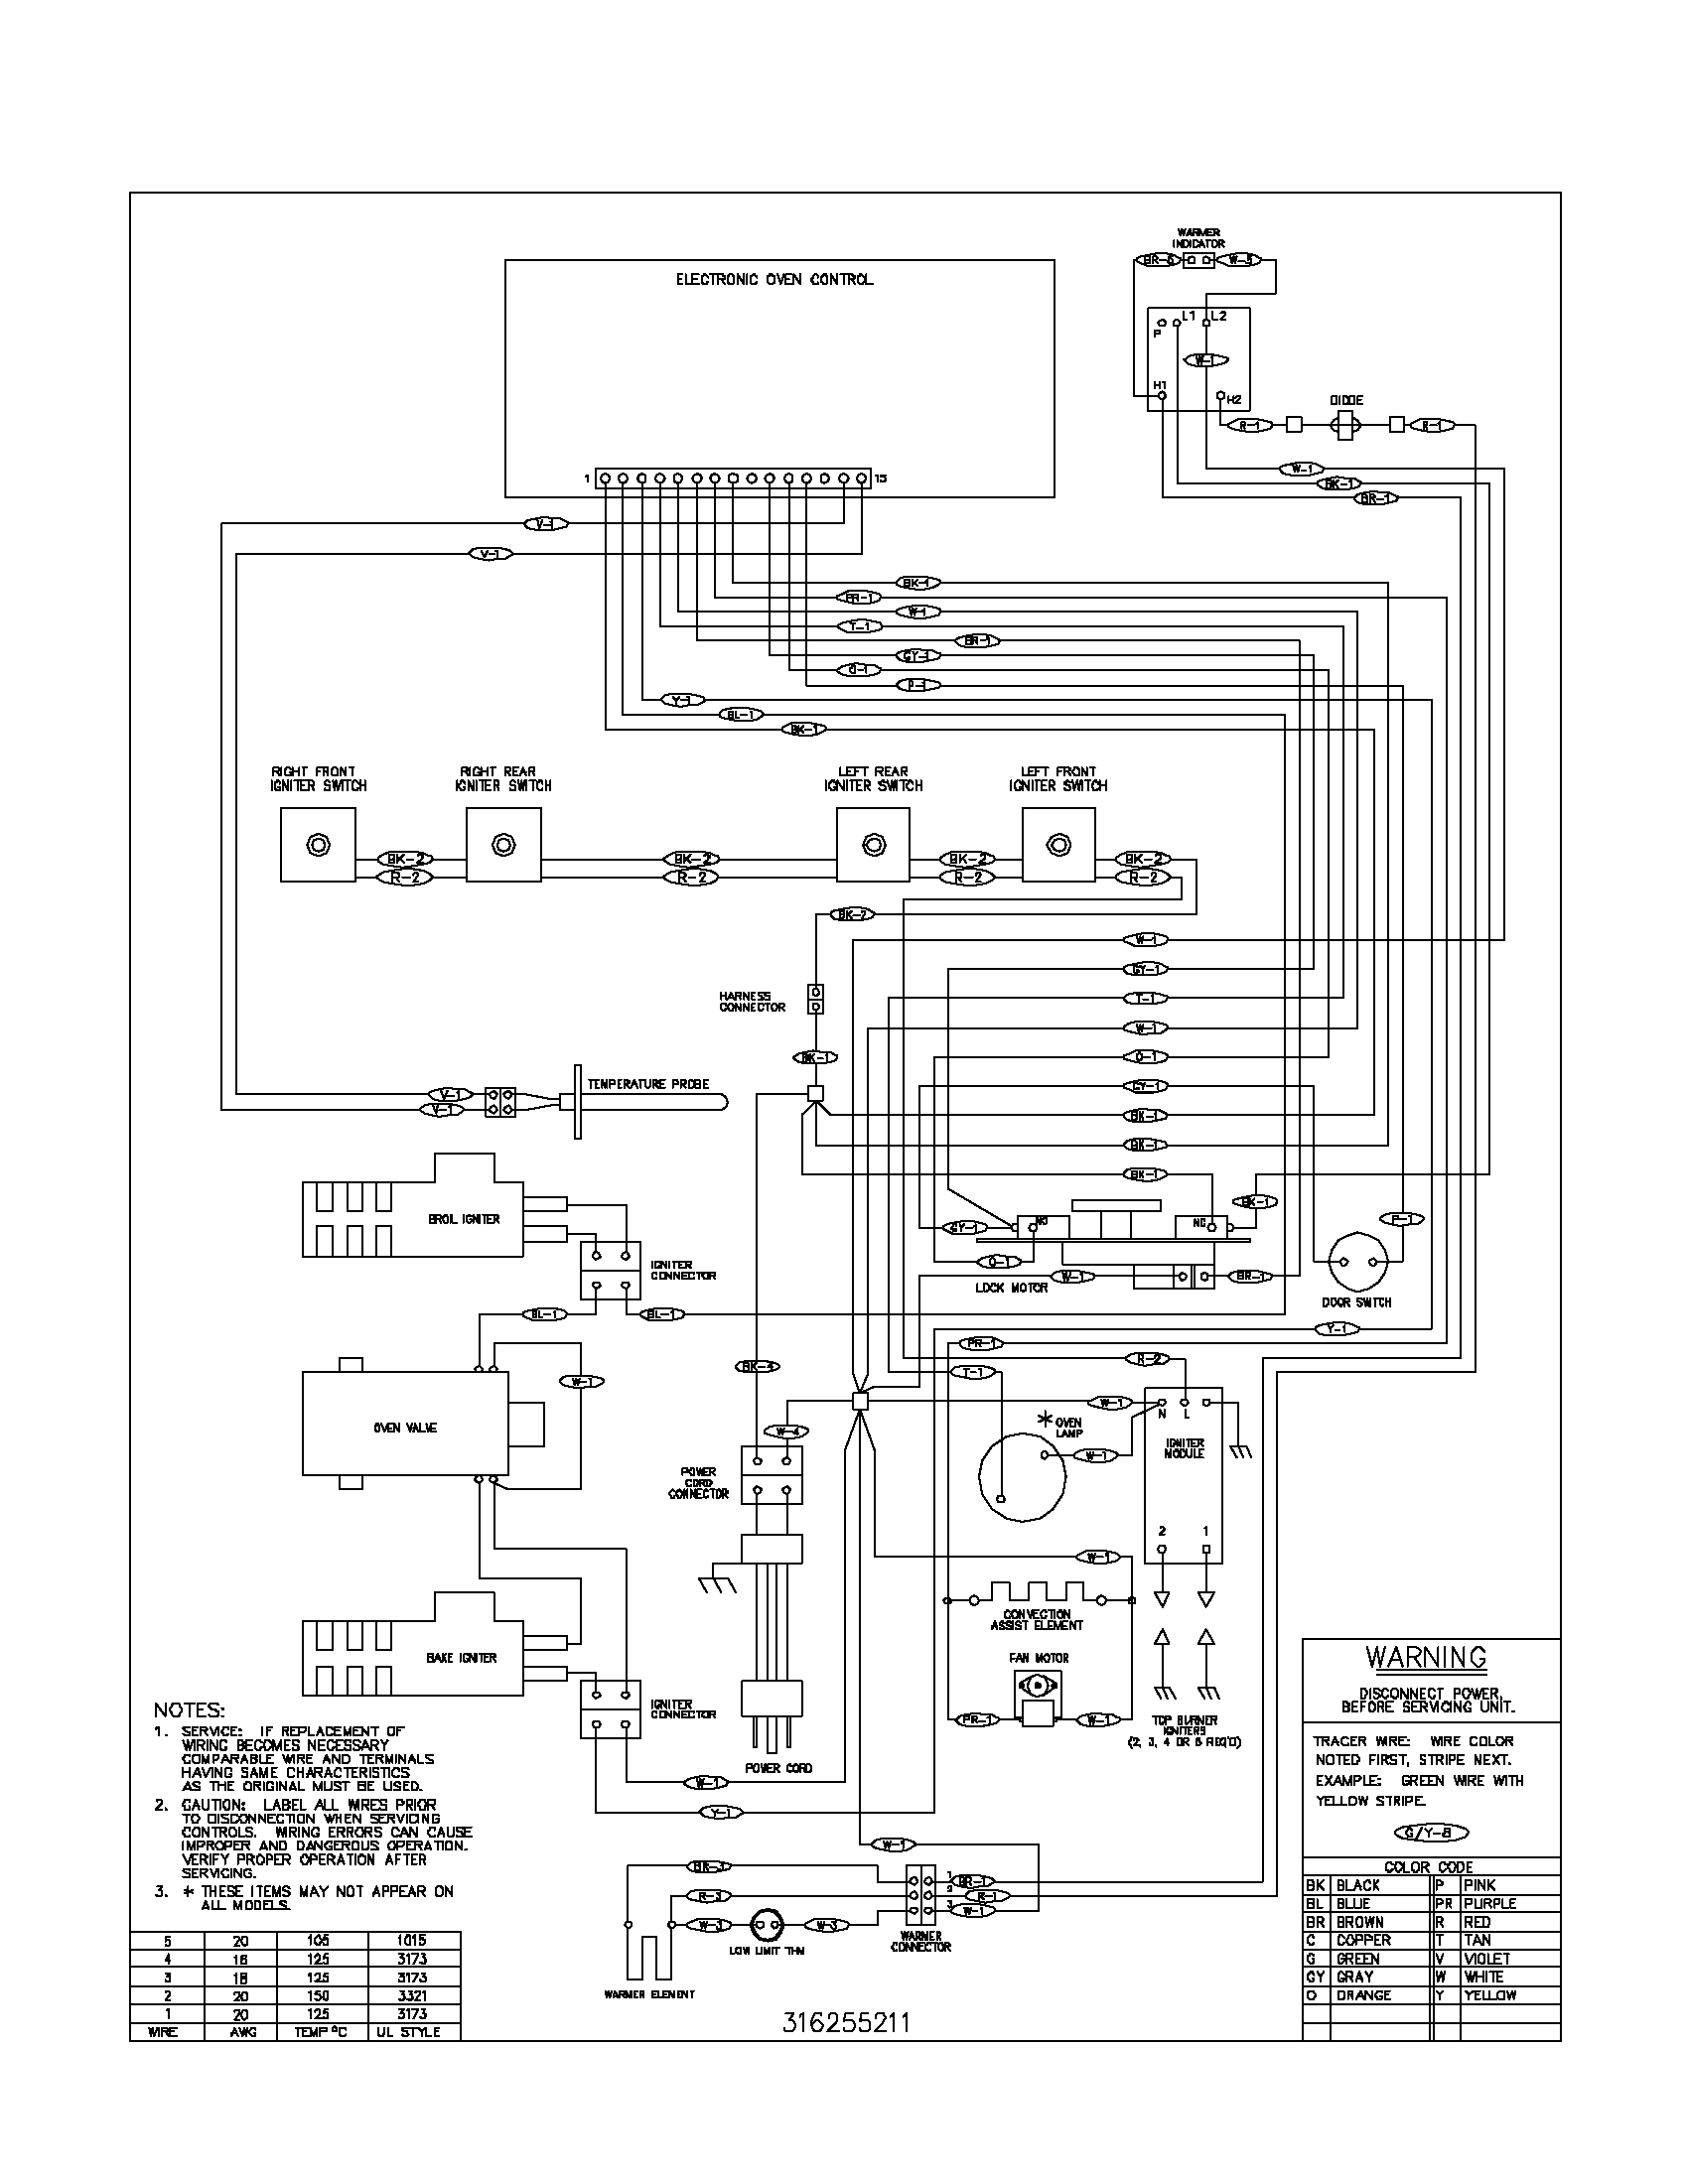 wiring diagram parts ed25dqxbw00 whirlpool refrigerator wiring schematic ed25dqxbw00  at crackthecode.co